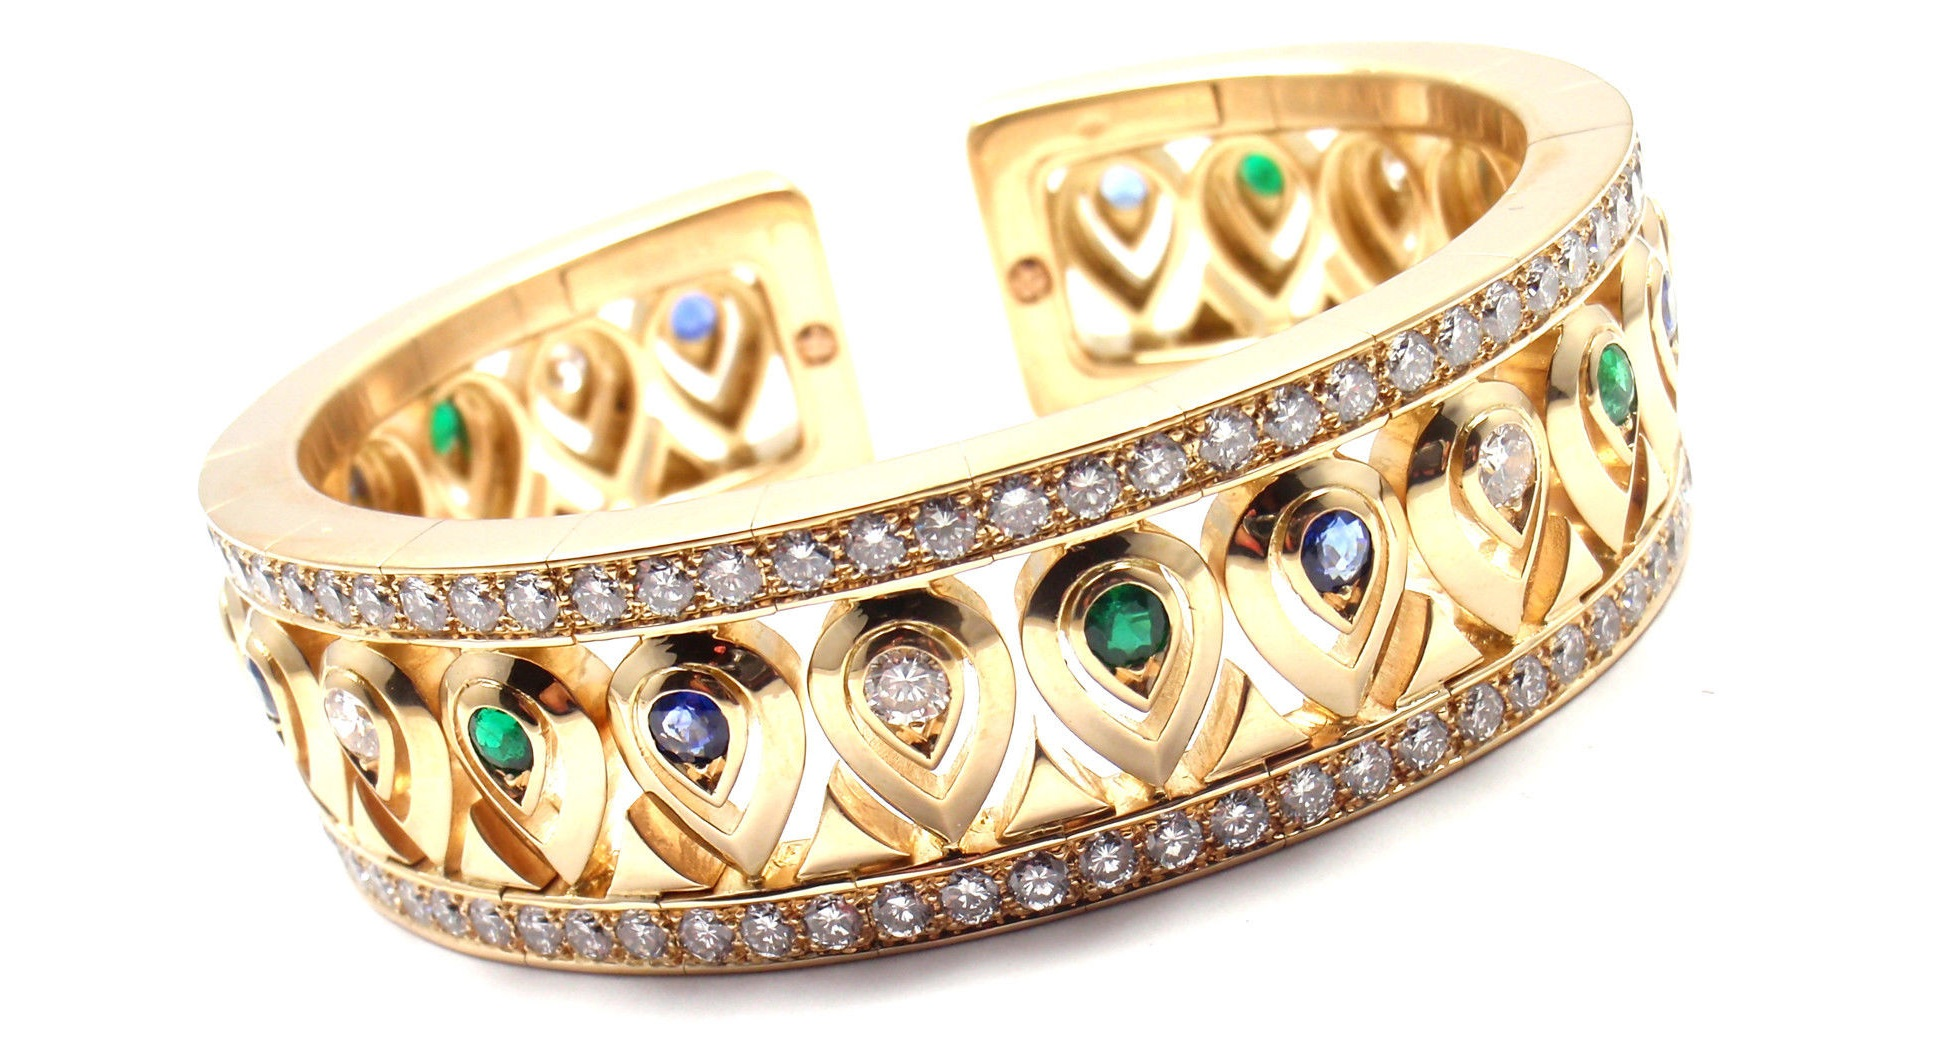 Cartier 18k Yellow Gold Diamond Sapphire Emerald Cuff Bangle Bracelet.